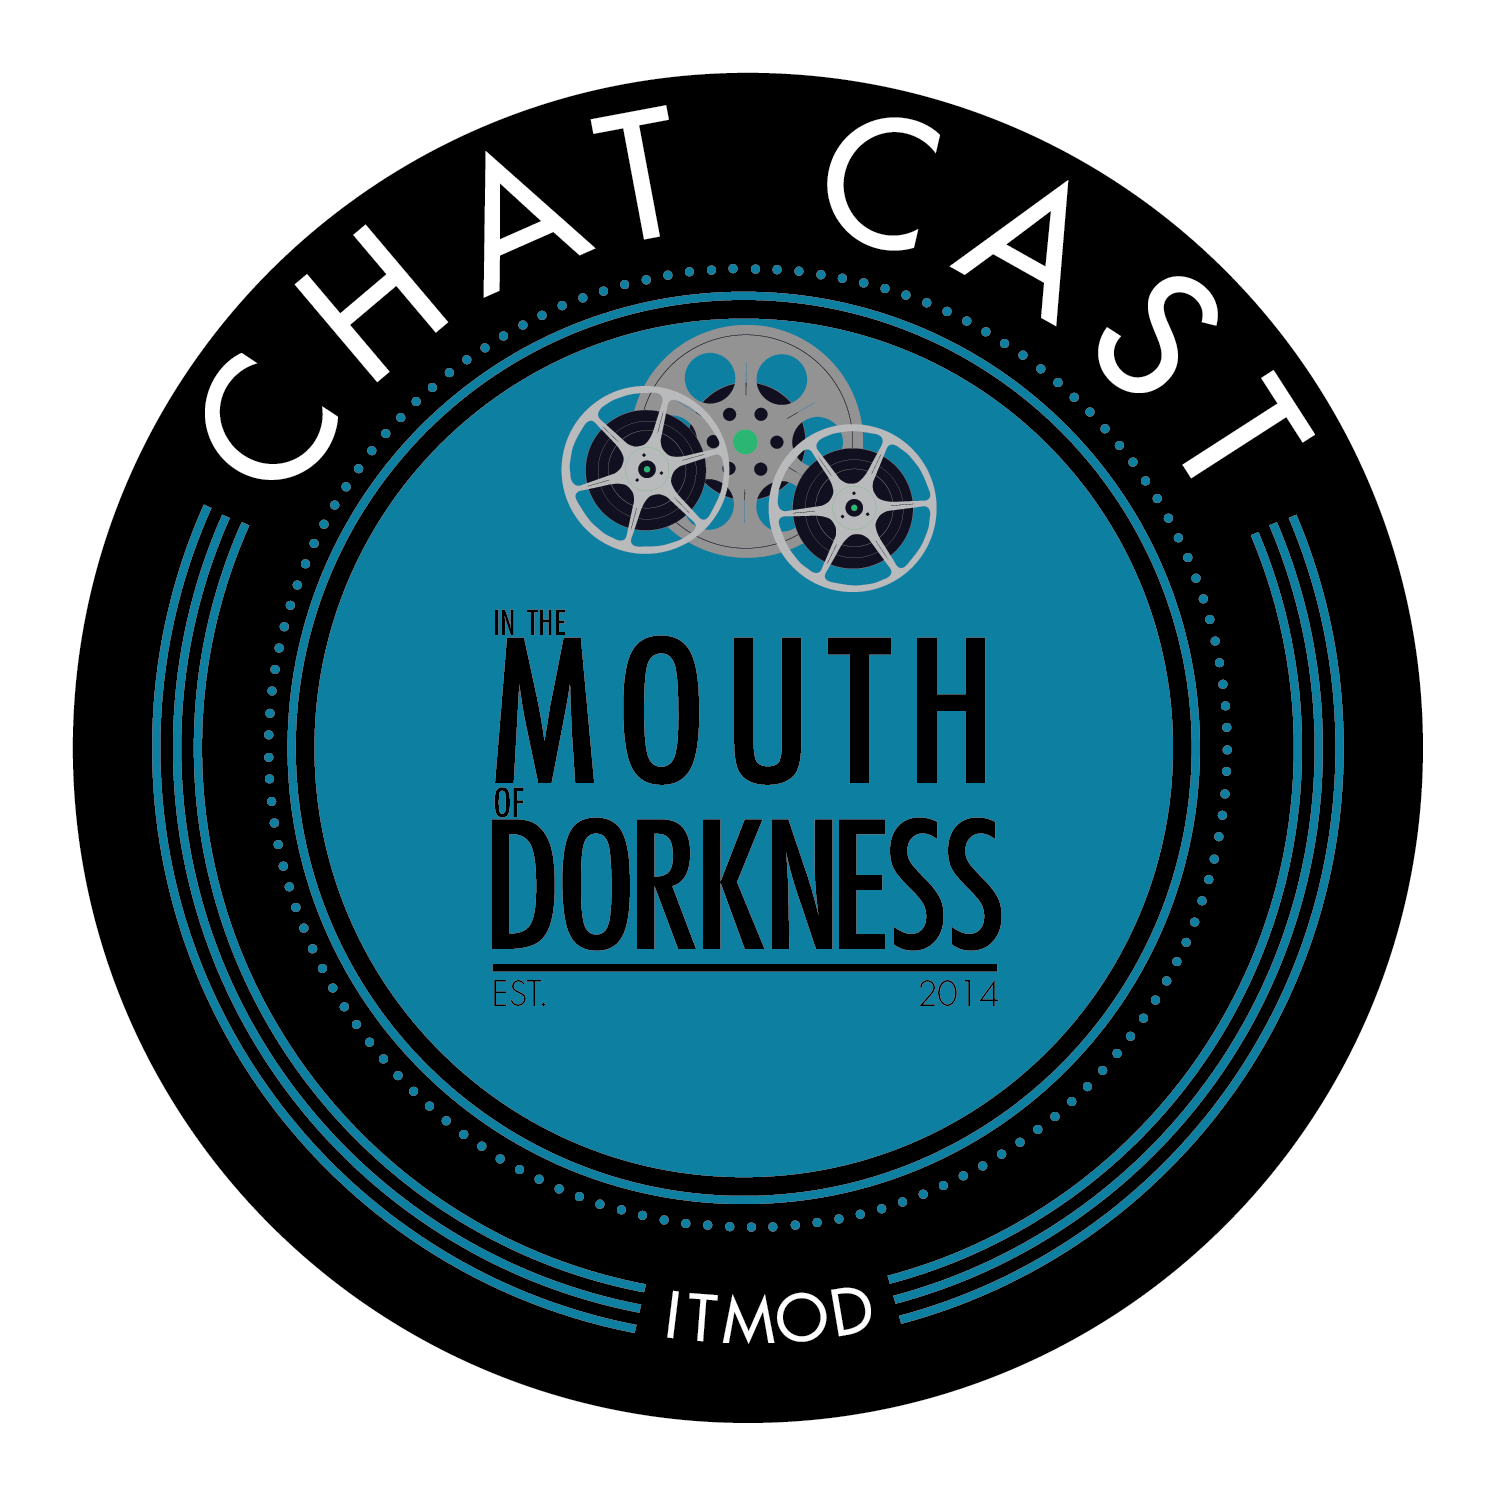 The itmodchatcast's Podcast